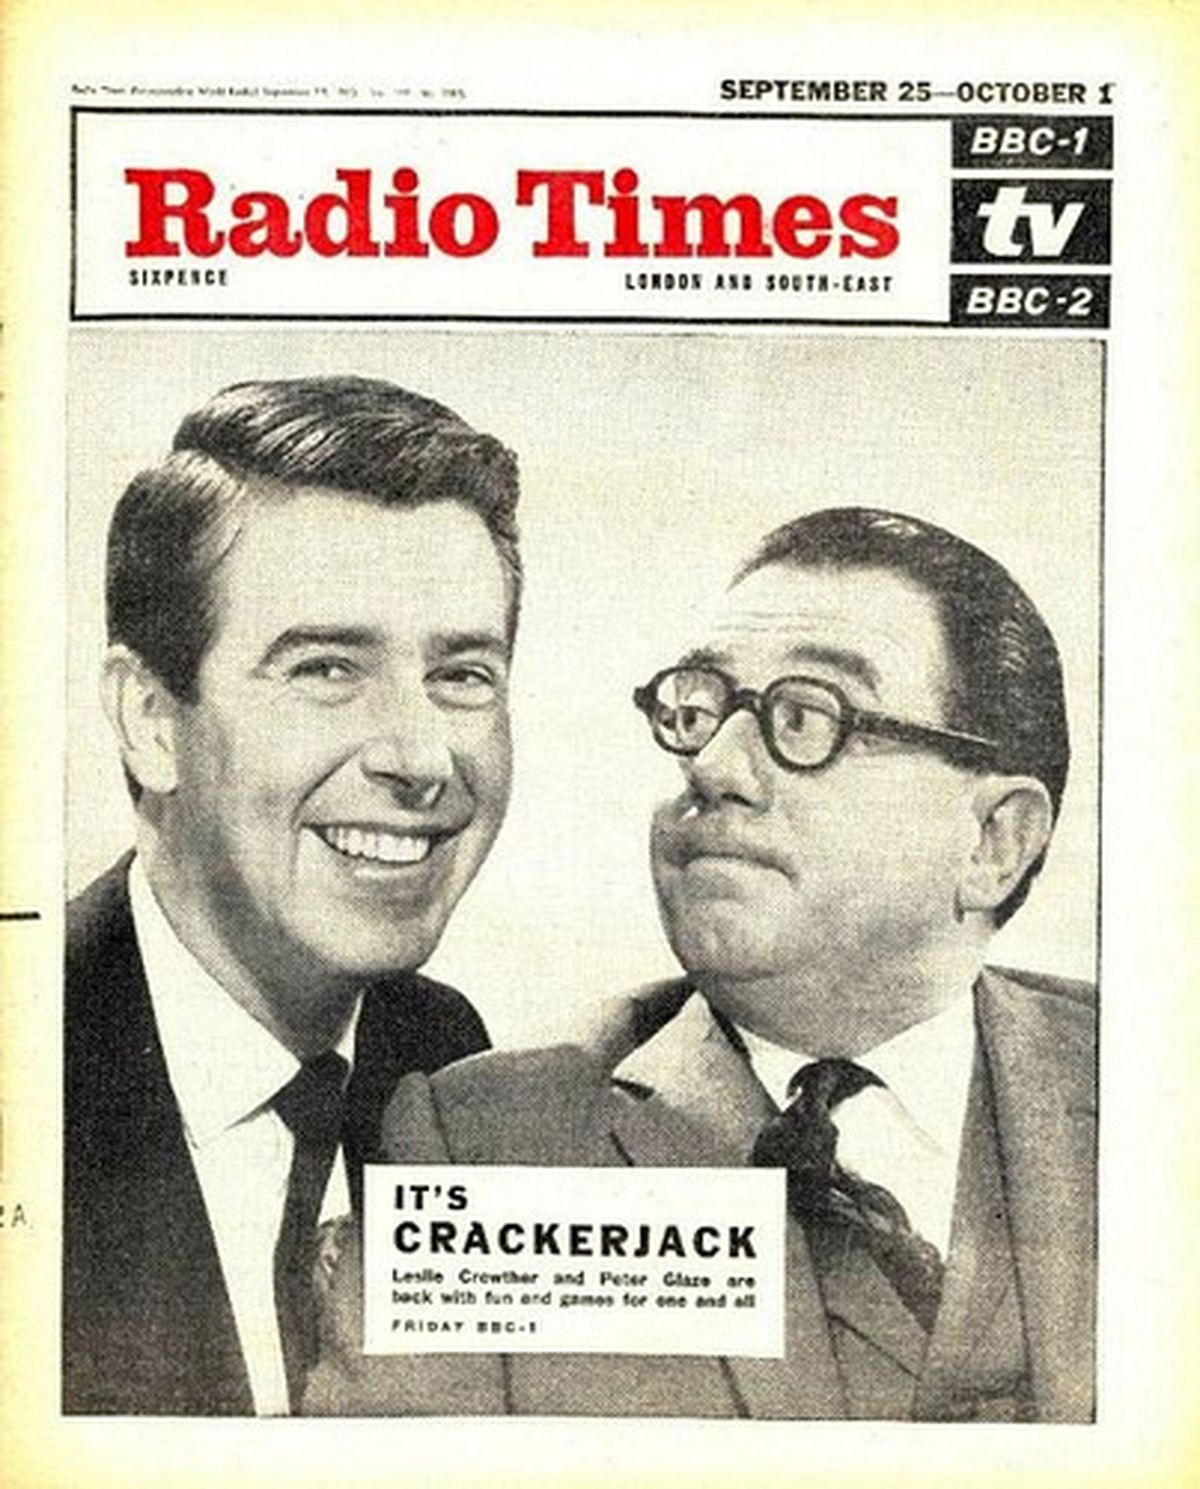 Leslie Crowther and Peter Glaze made the front cover of Radio Times